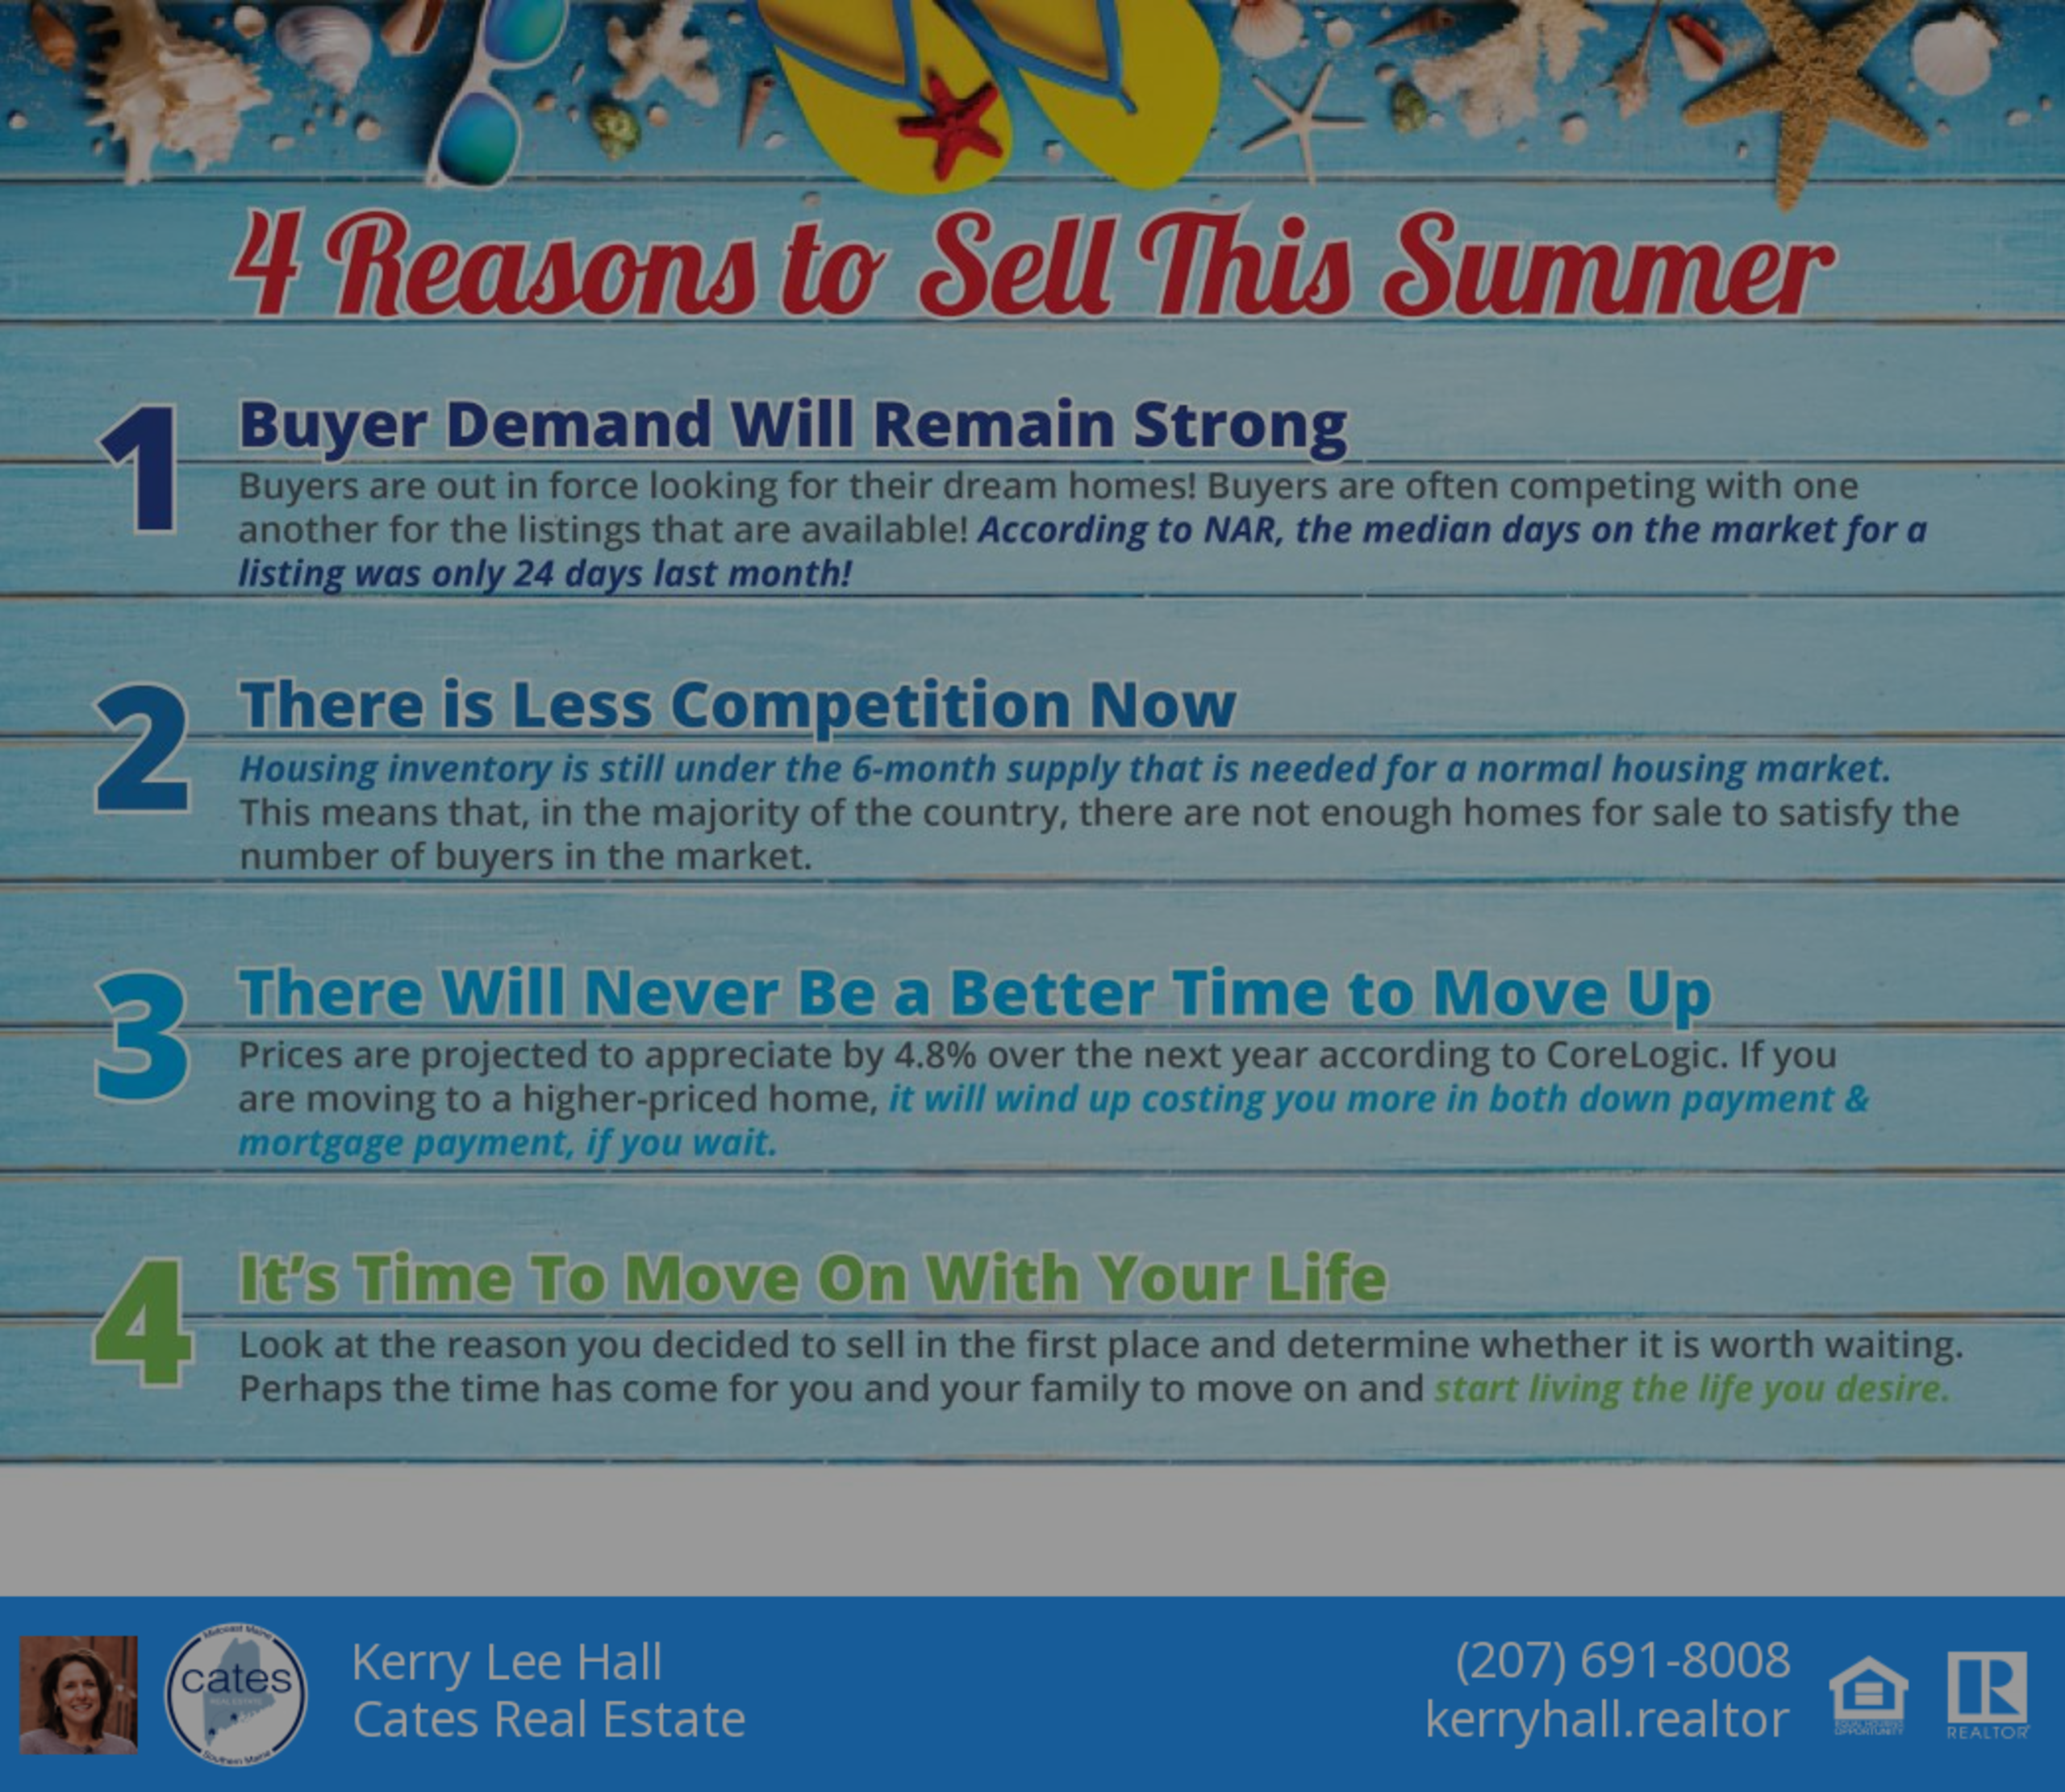 Reasons to Sell this Summer